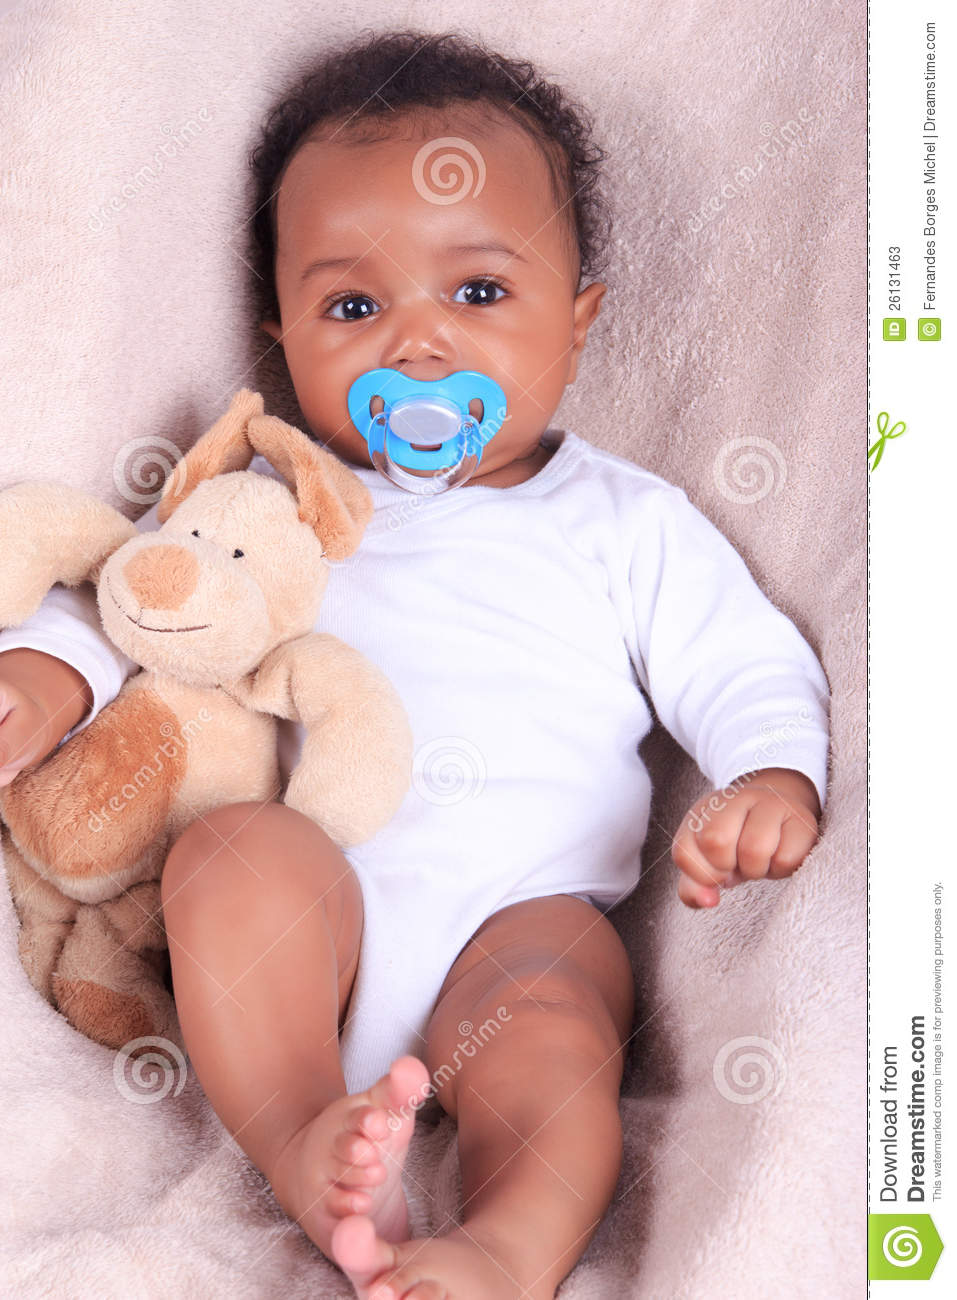 Newborn baby african american stock photos image 26131463 - African american baby pics ...